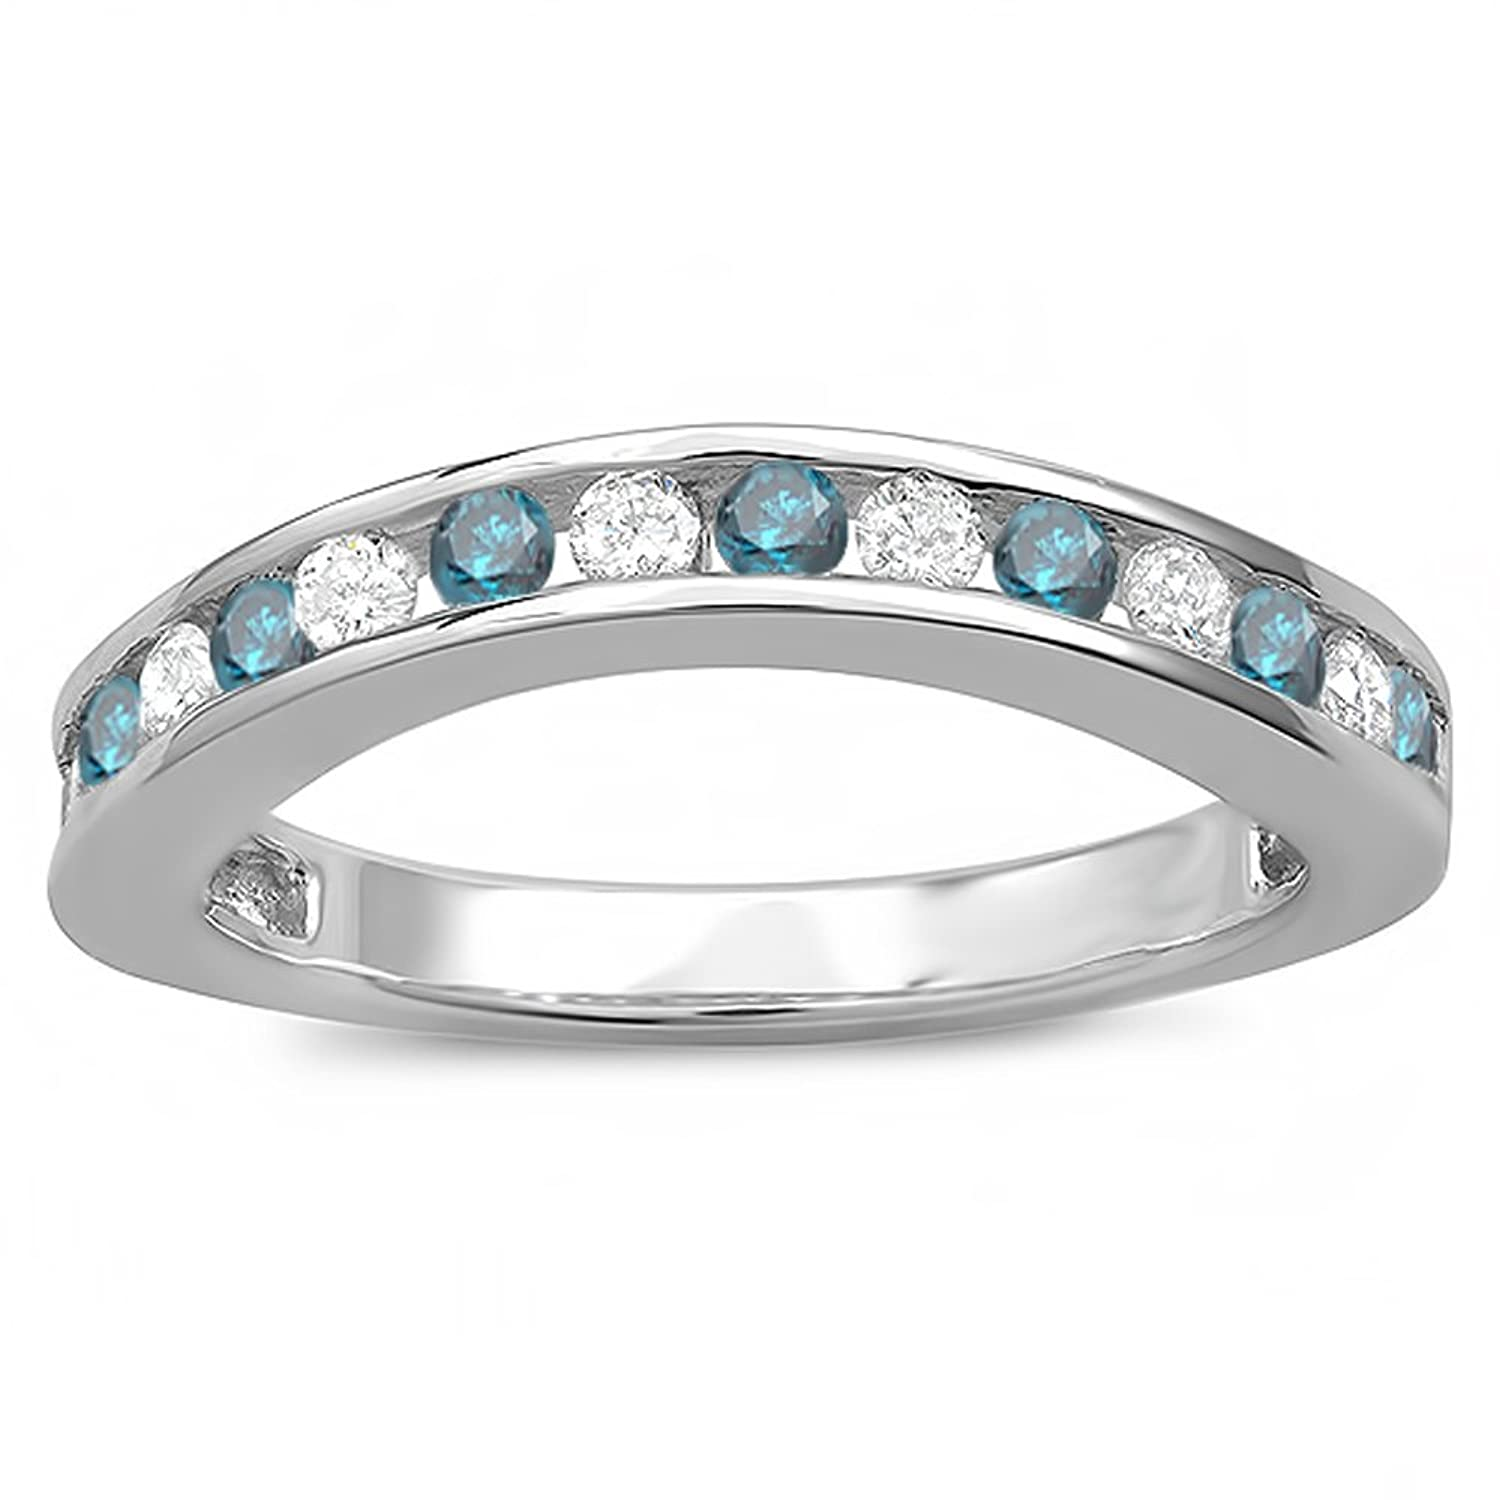 0.75 Carat (ctw) 10k White Gold Round White And Blue Diamond Curved Guard Matching Bridal Wedding Band